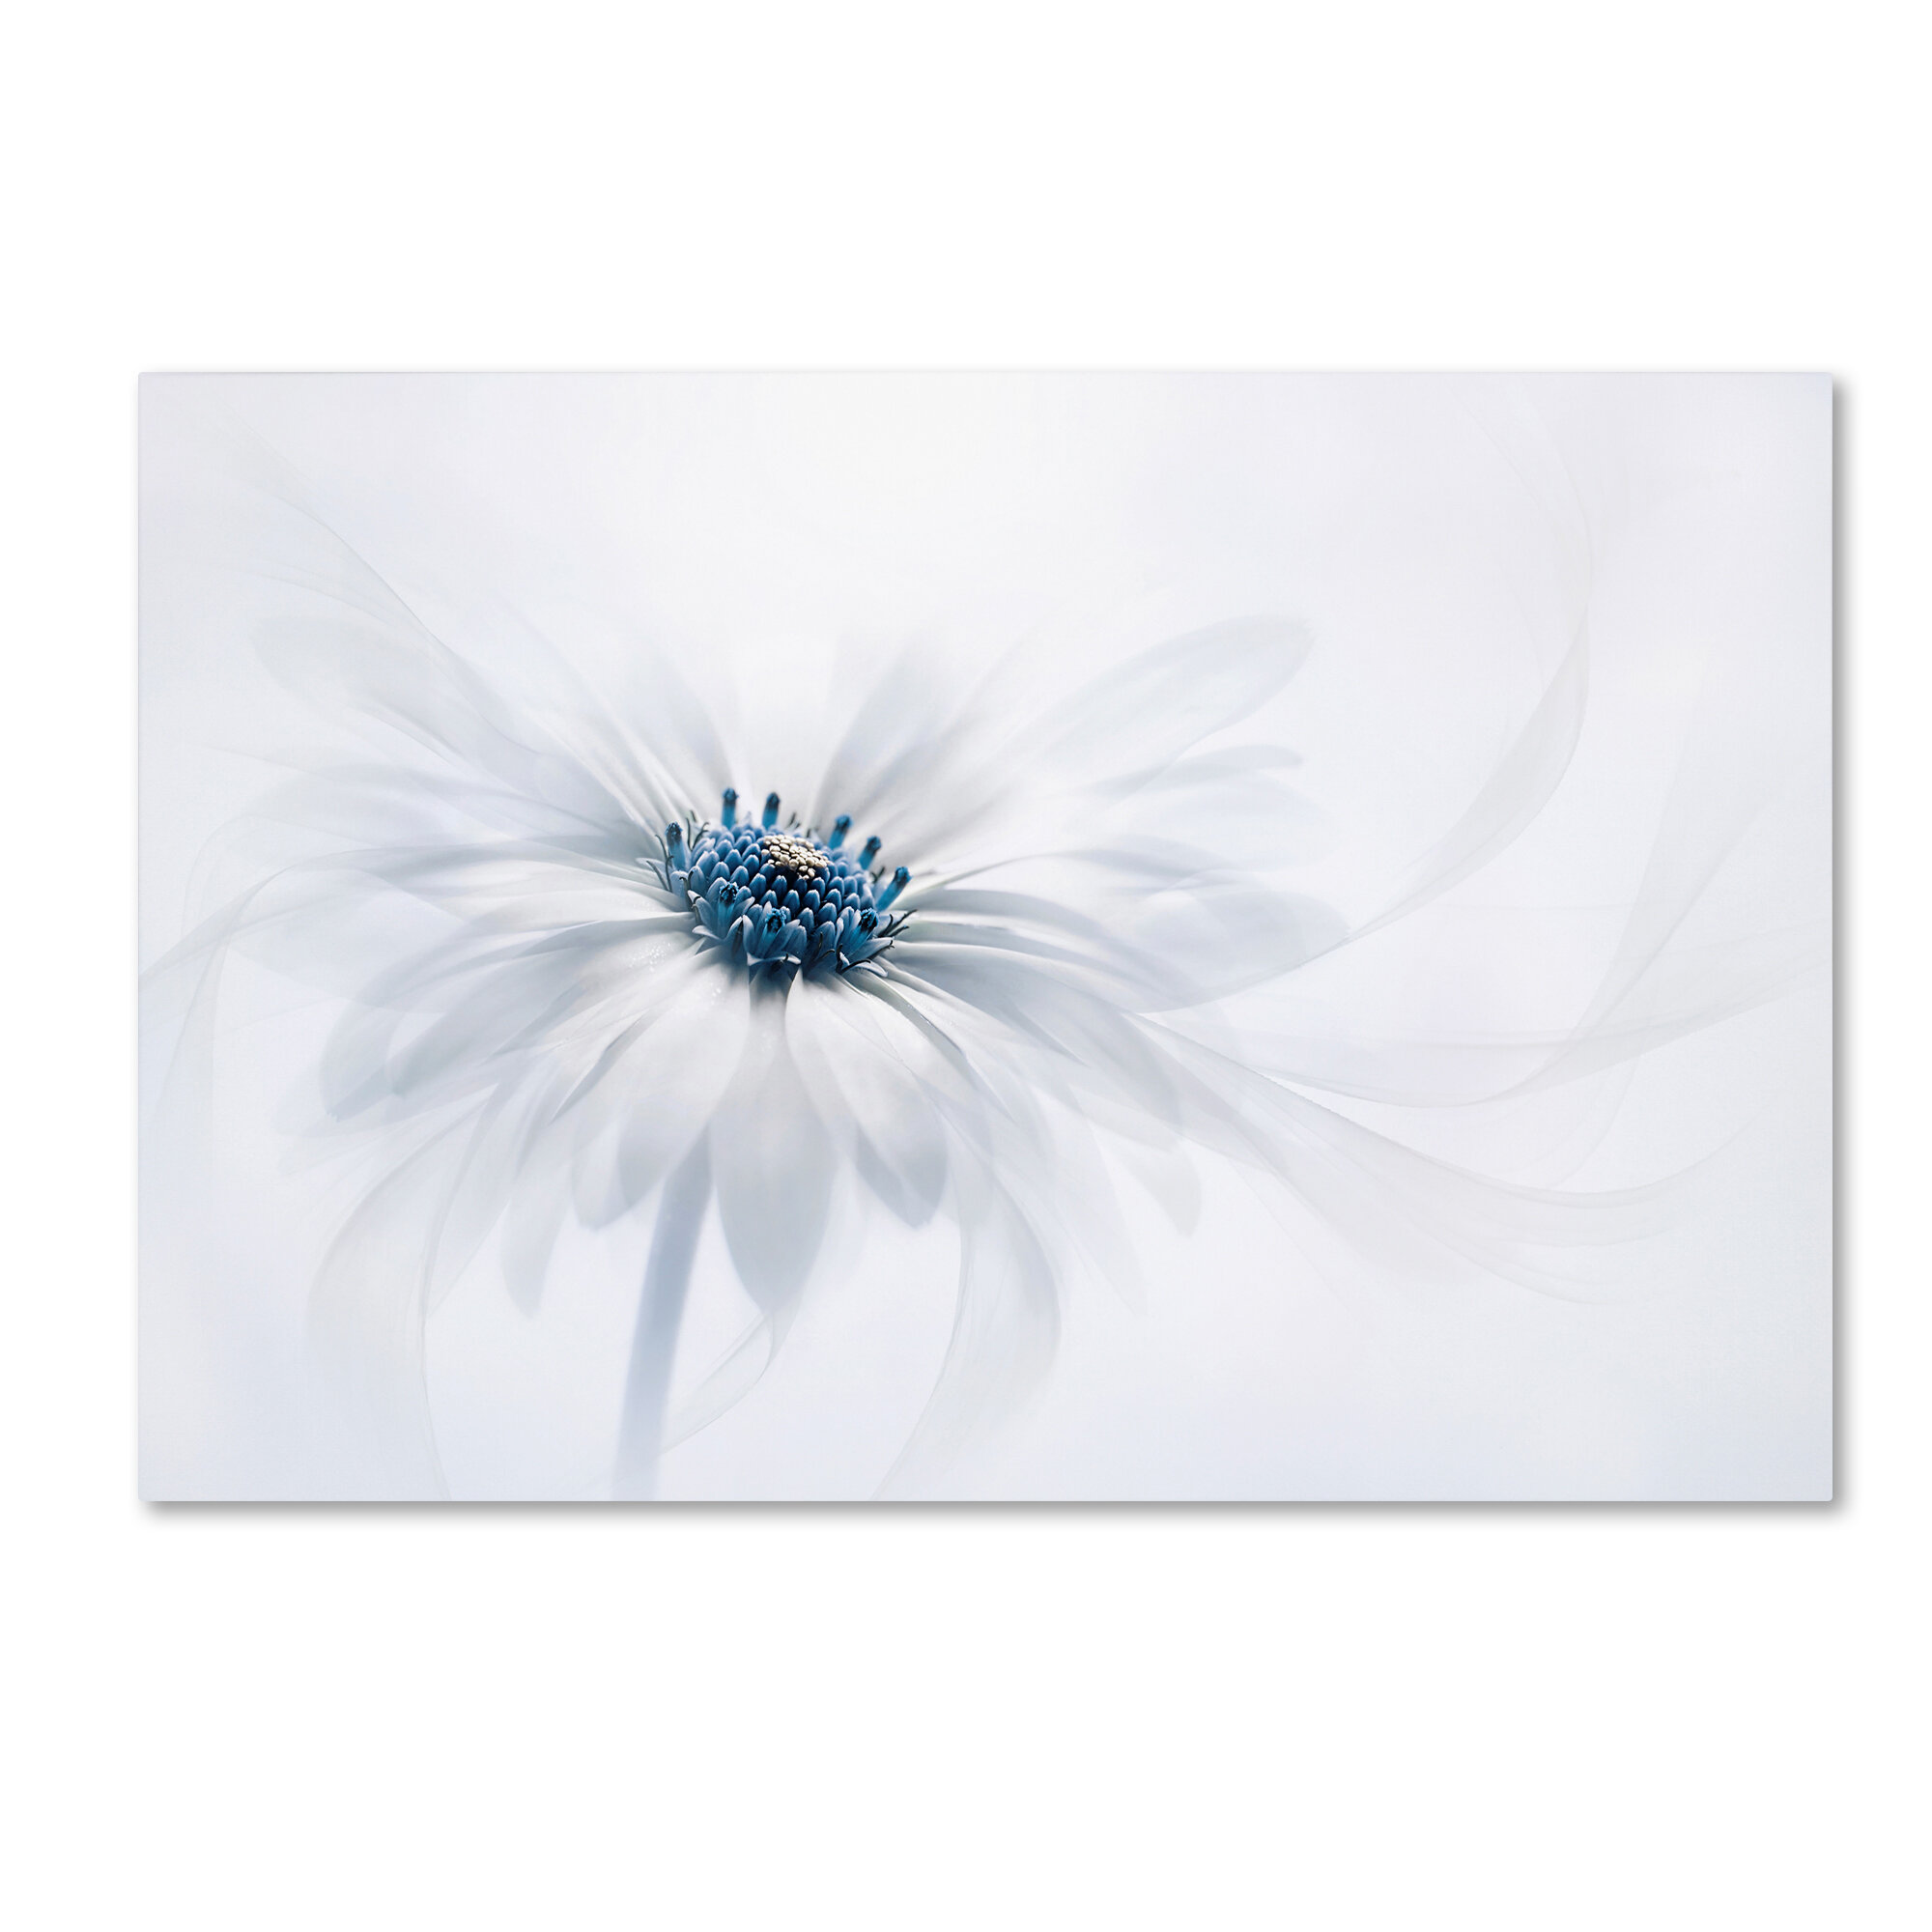 Spa Rock Stone Daisy Flower CANVAS WALL ART DECO LARGE READY TO HANG all sizes